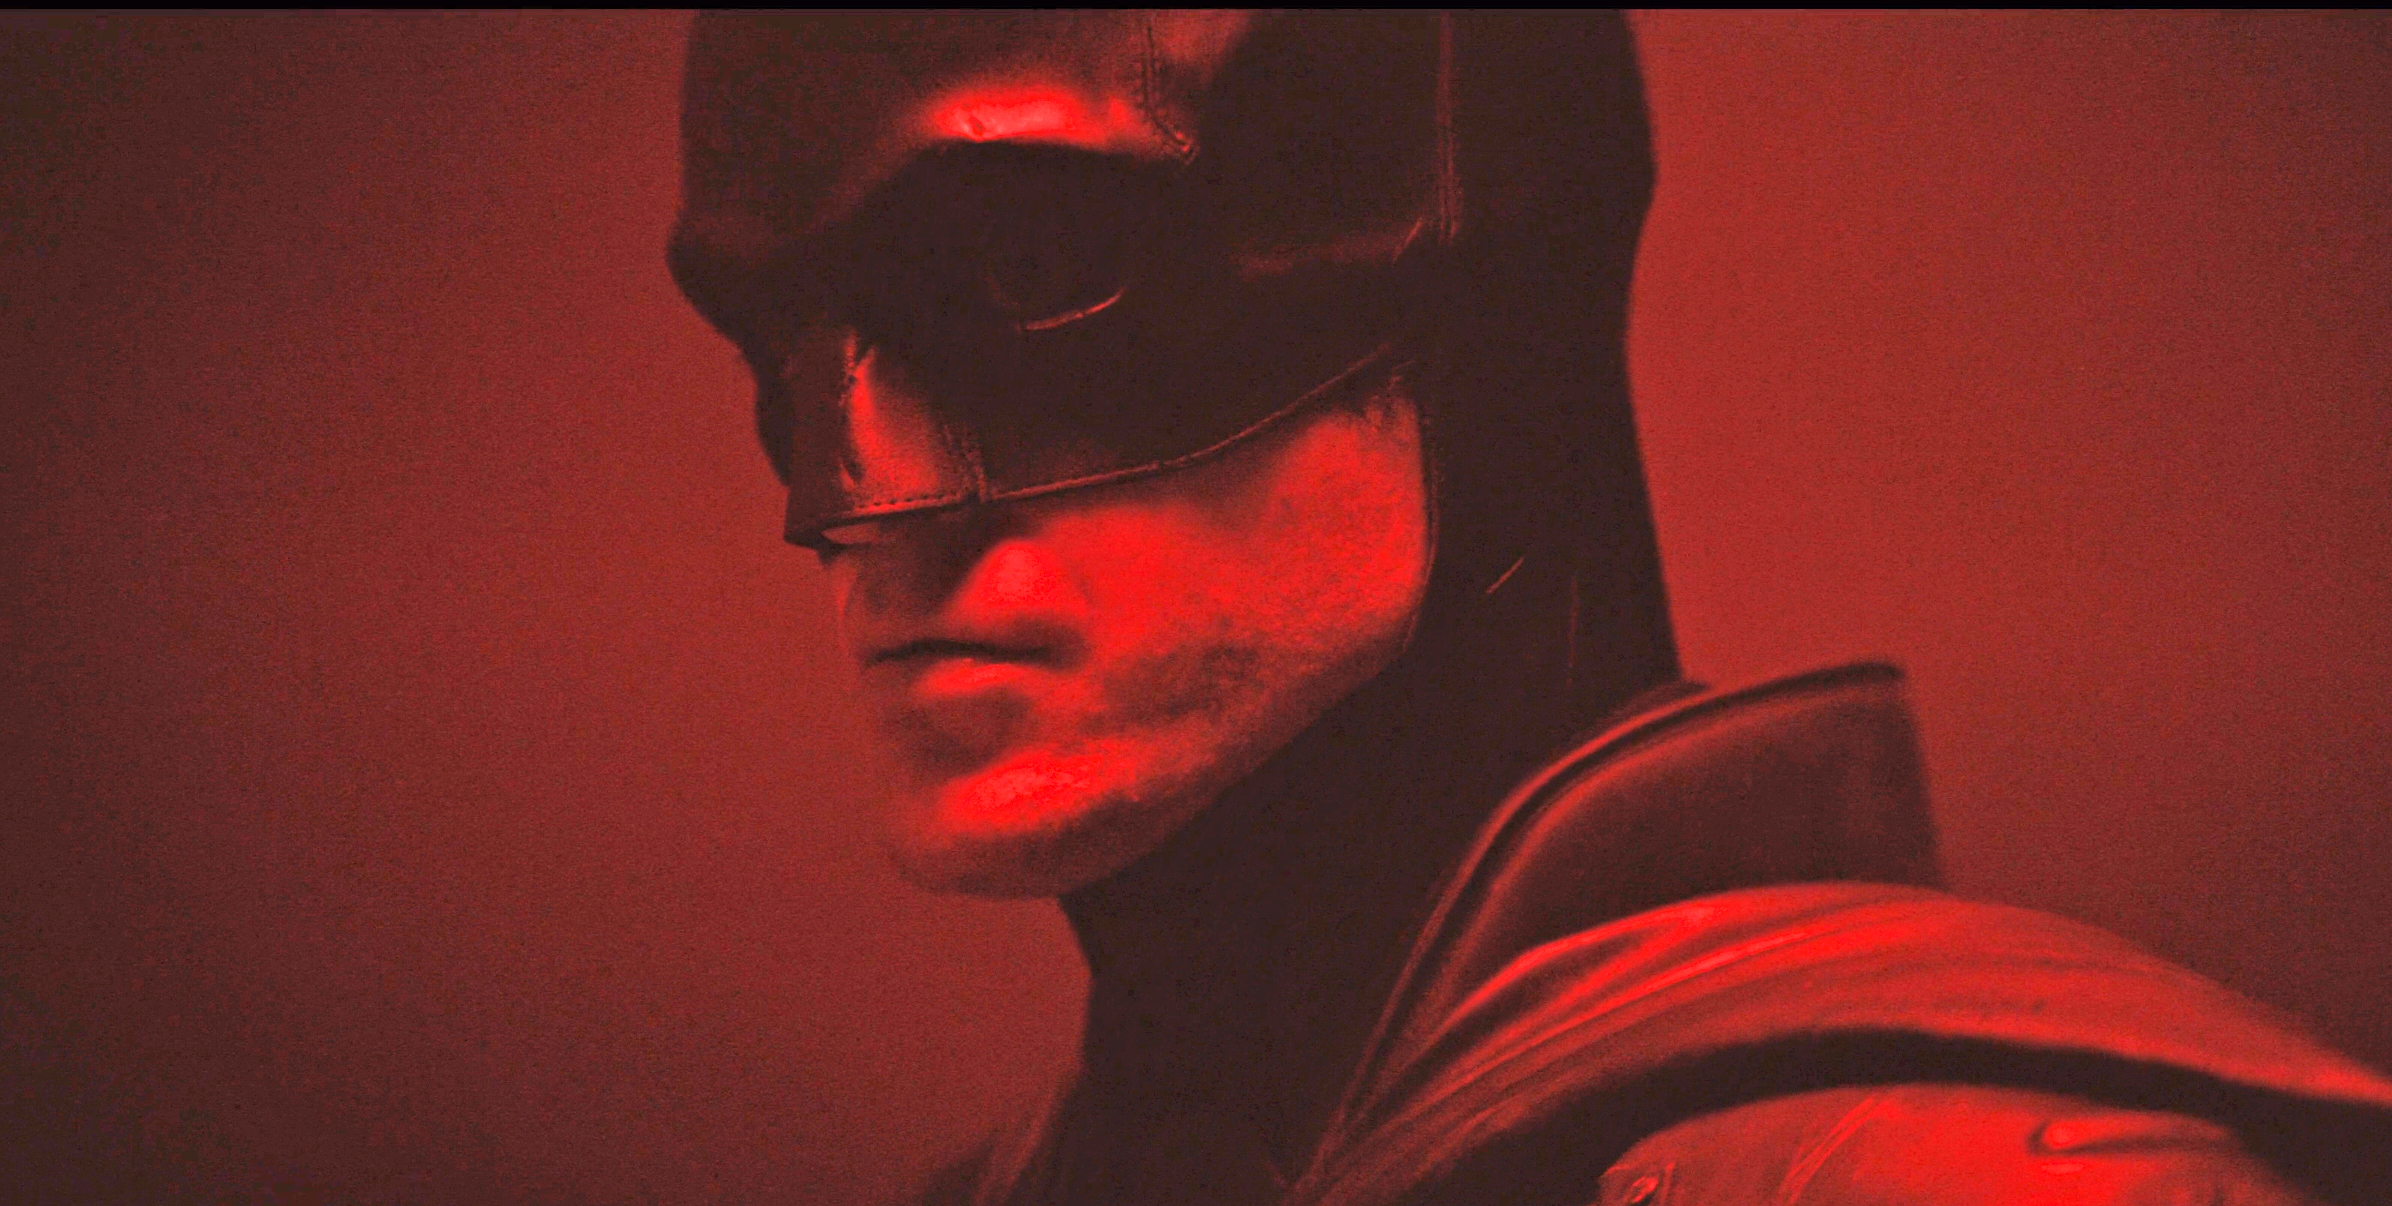 In the short clip, Robert Pattinson — dressed as the Caped Crusader — is approaching towards the camera that is set in a dark room saturated in red light.